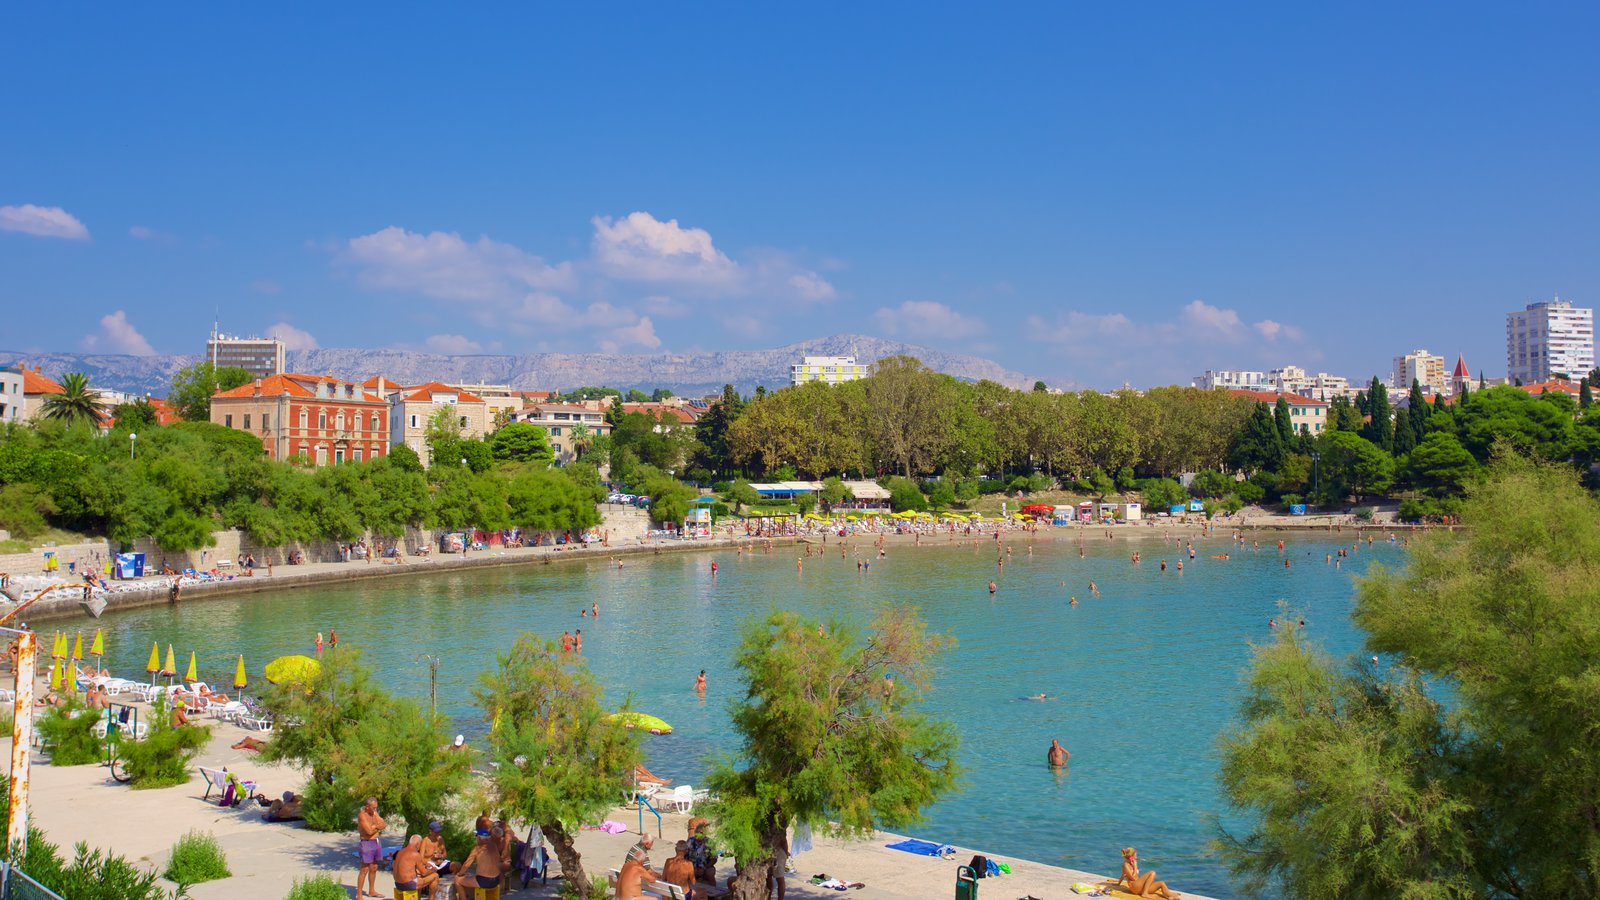 Bacvice Beach showing a city and general coastal views